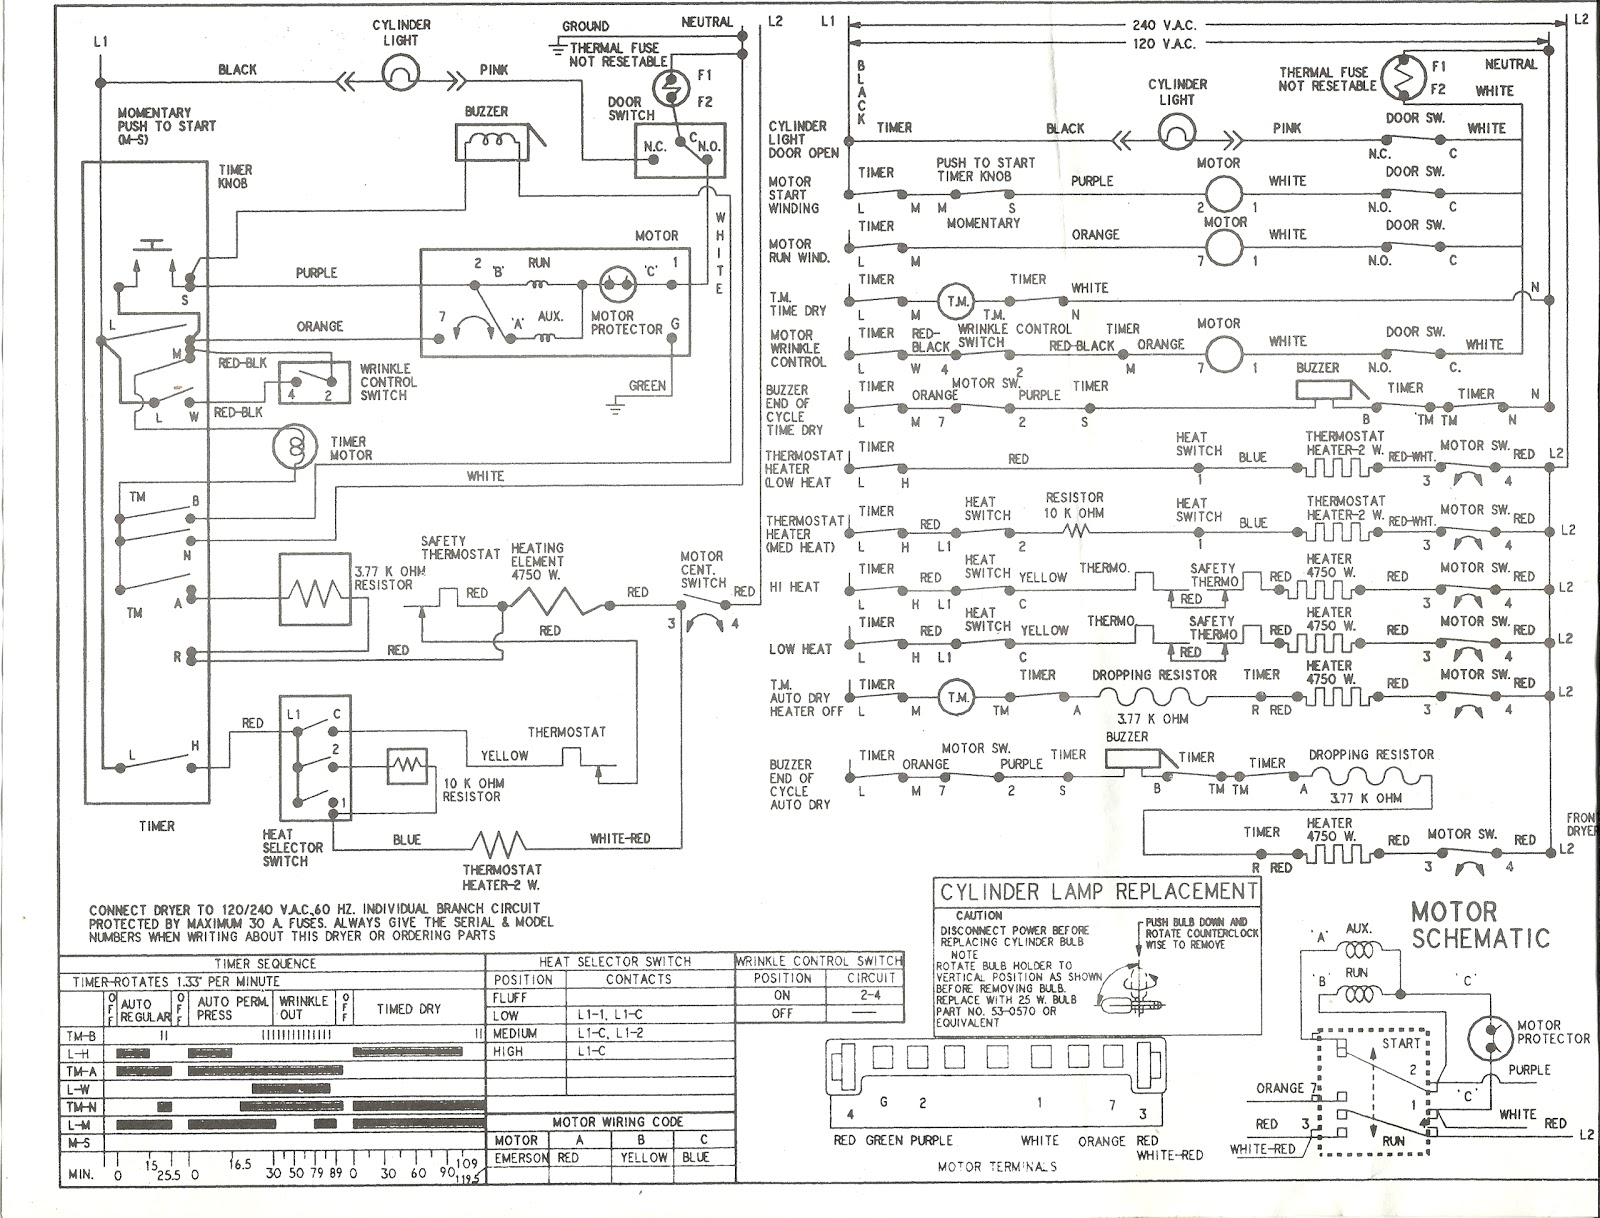 Appliance Talk: Kenmore Series Electric Dryer Wiring Diagram ... on whirlpool wiring schematic, ge dryer wiring diagram, electric dryer wiring diagram, whirlpool washer diagram, electrolux dryer wiring diagram, whirlpool dryer repair diagram, haier dryer wiring diagram, maytag dryer wiring diagram, amana dryer wiring diagram, whirlpool duet sport model number, whirlpool schematic diagrams, whirlpool dryer power cord diagram, ggw9200lw0 dryer wiring diagram, hotpoint dryer wiring diagram, bosch dryer wiring diagram, whirlpool dryer timer wiring diagram, whirlpool electric dryer diagram, dryer plug wiring diagram, kenmore dryer wiring diagram, roper dryer wiring diagram,